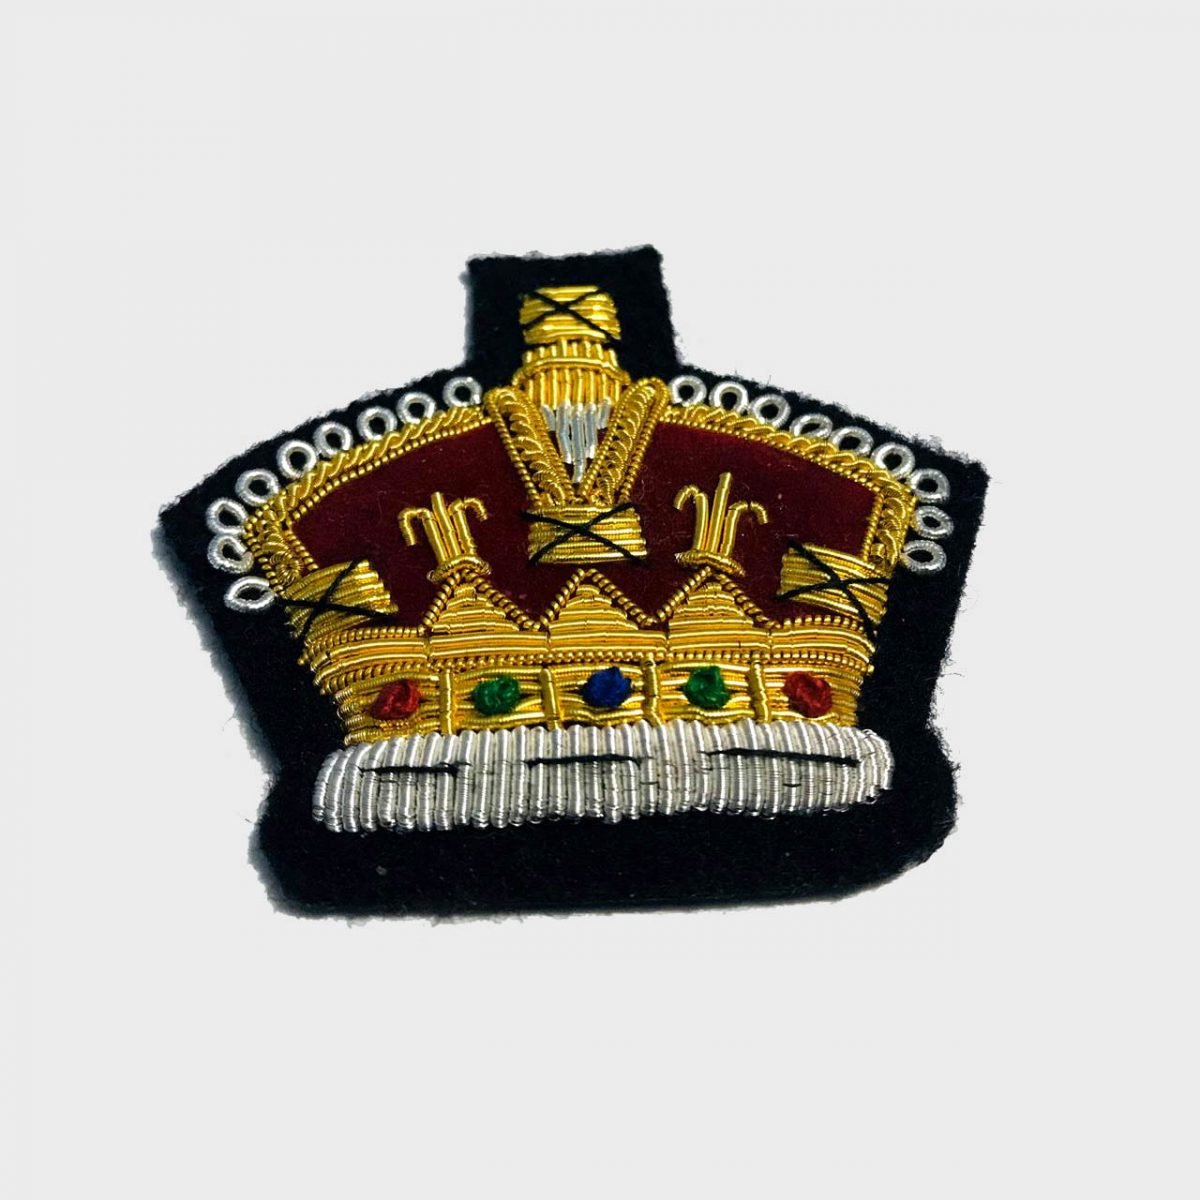 Crown Bullion Embroidered Blazer Crest Patch - Fashionable 3D embroidered Crown CrestMade by skilled artisansBullion wire hand Stitched on Black colour FeltSize is approx 2x2 inchessew-on backing only 5